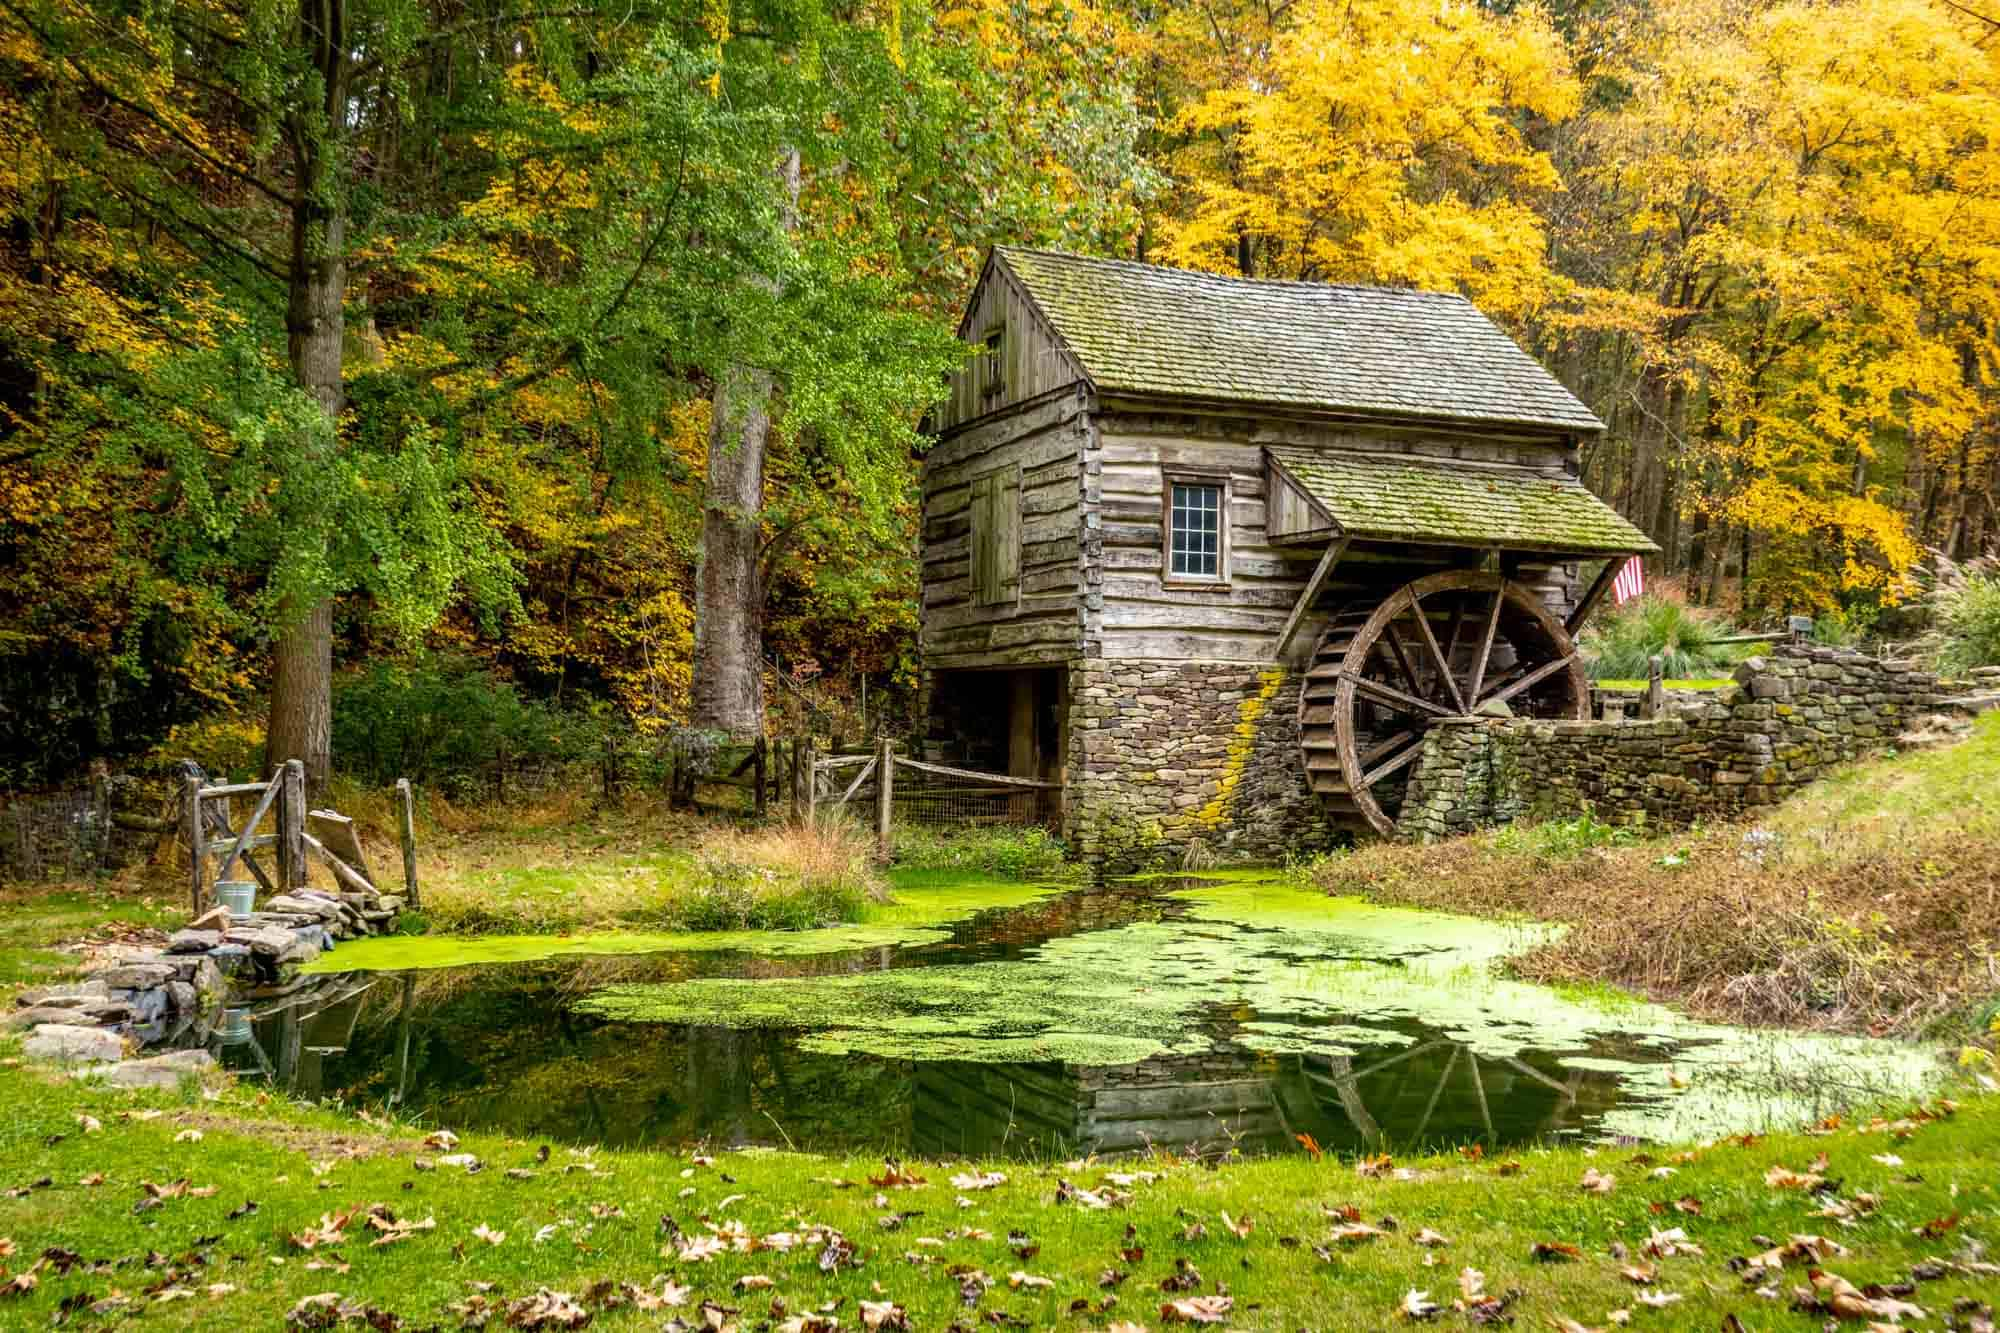 18th-century wooden mill beside a pond and a row of trees